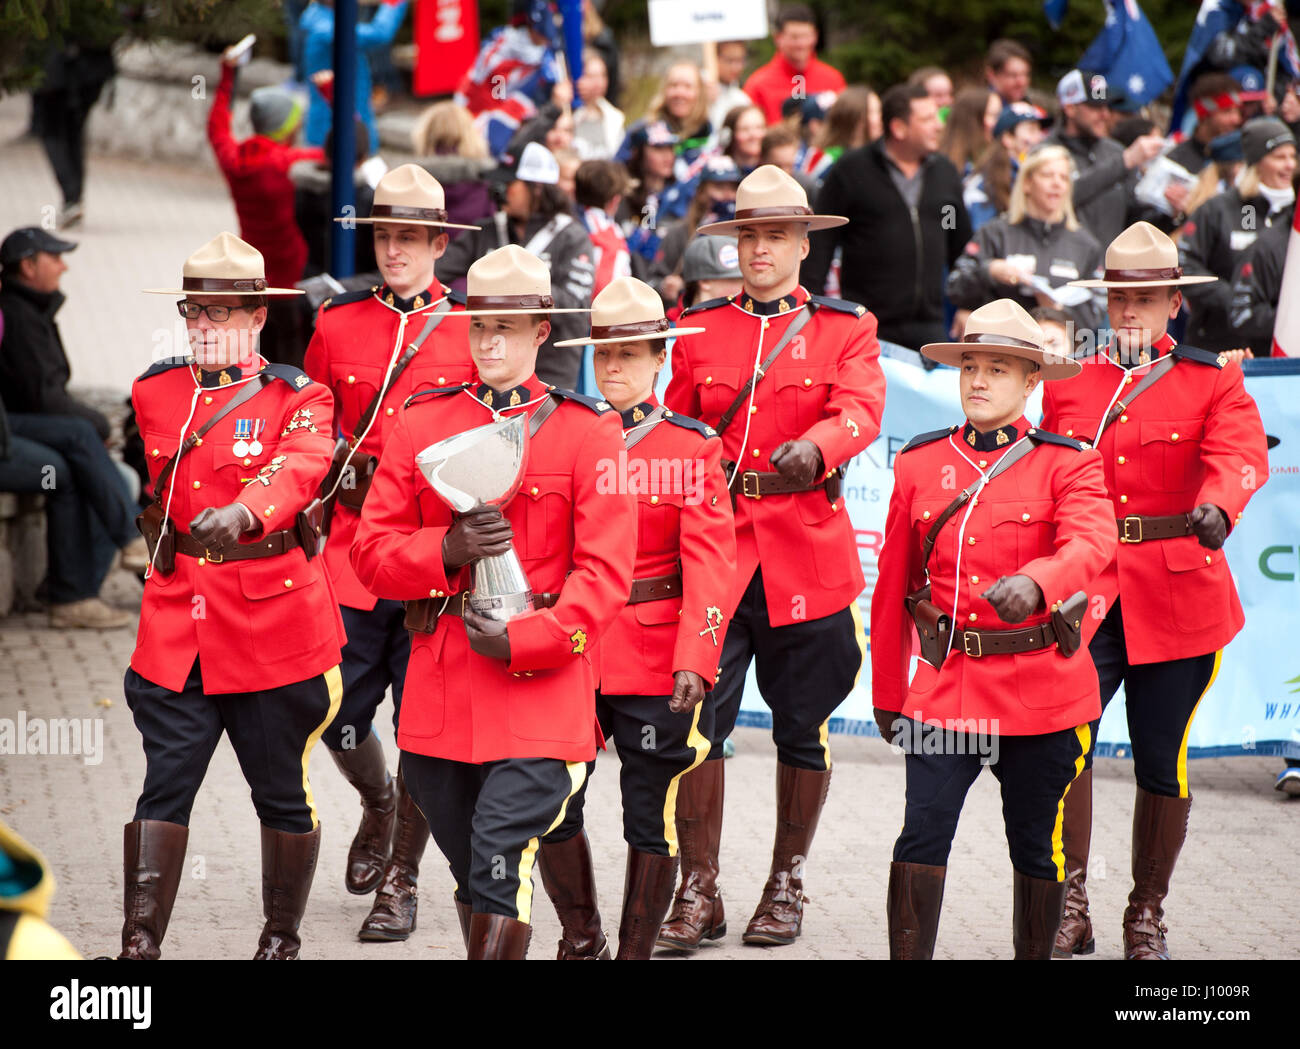 Royal Canadian Mounted Police, or RCMP officers in traditional dress red serge uniforms parade during the Canada - Stock Image